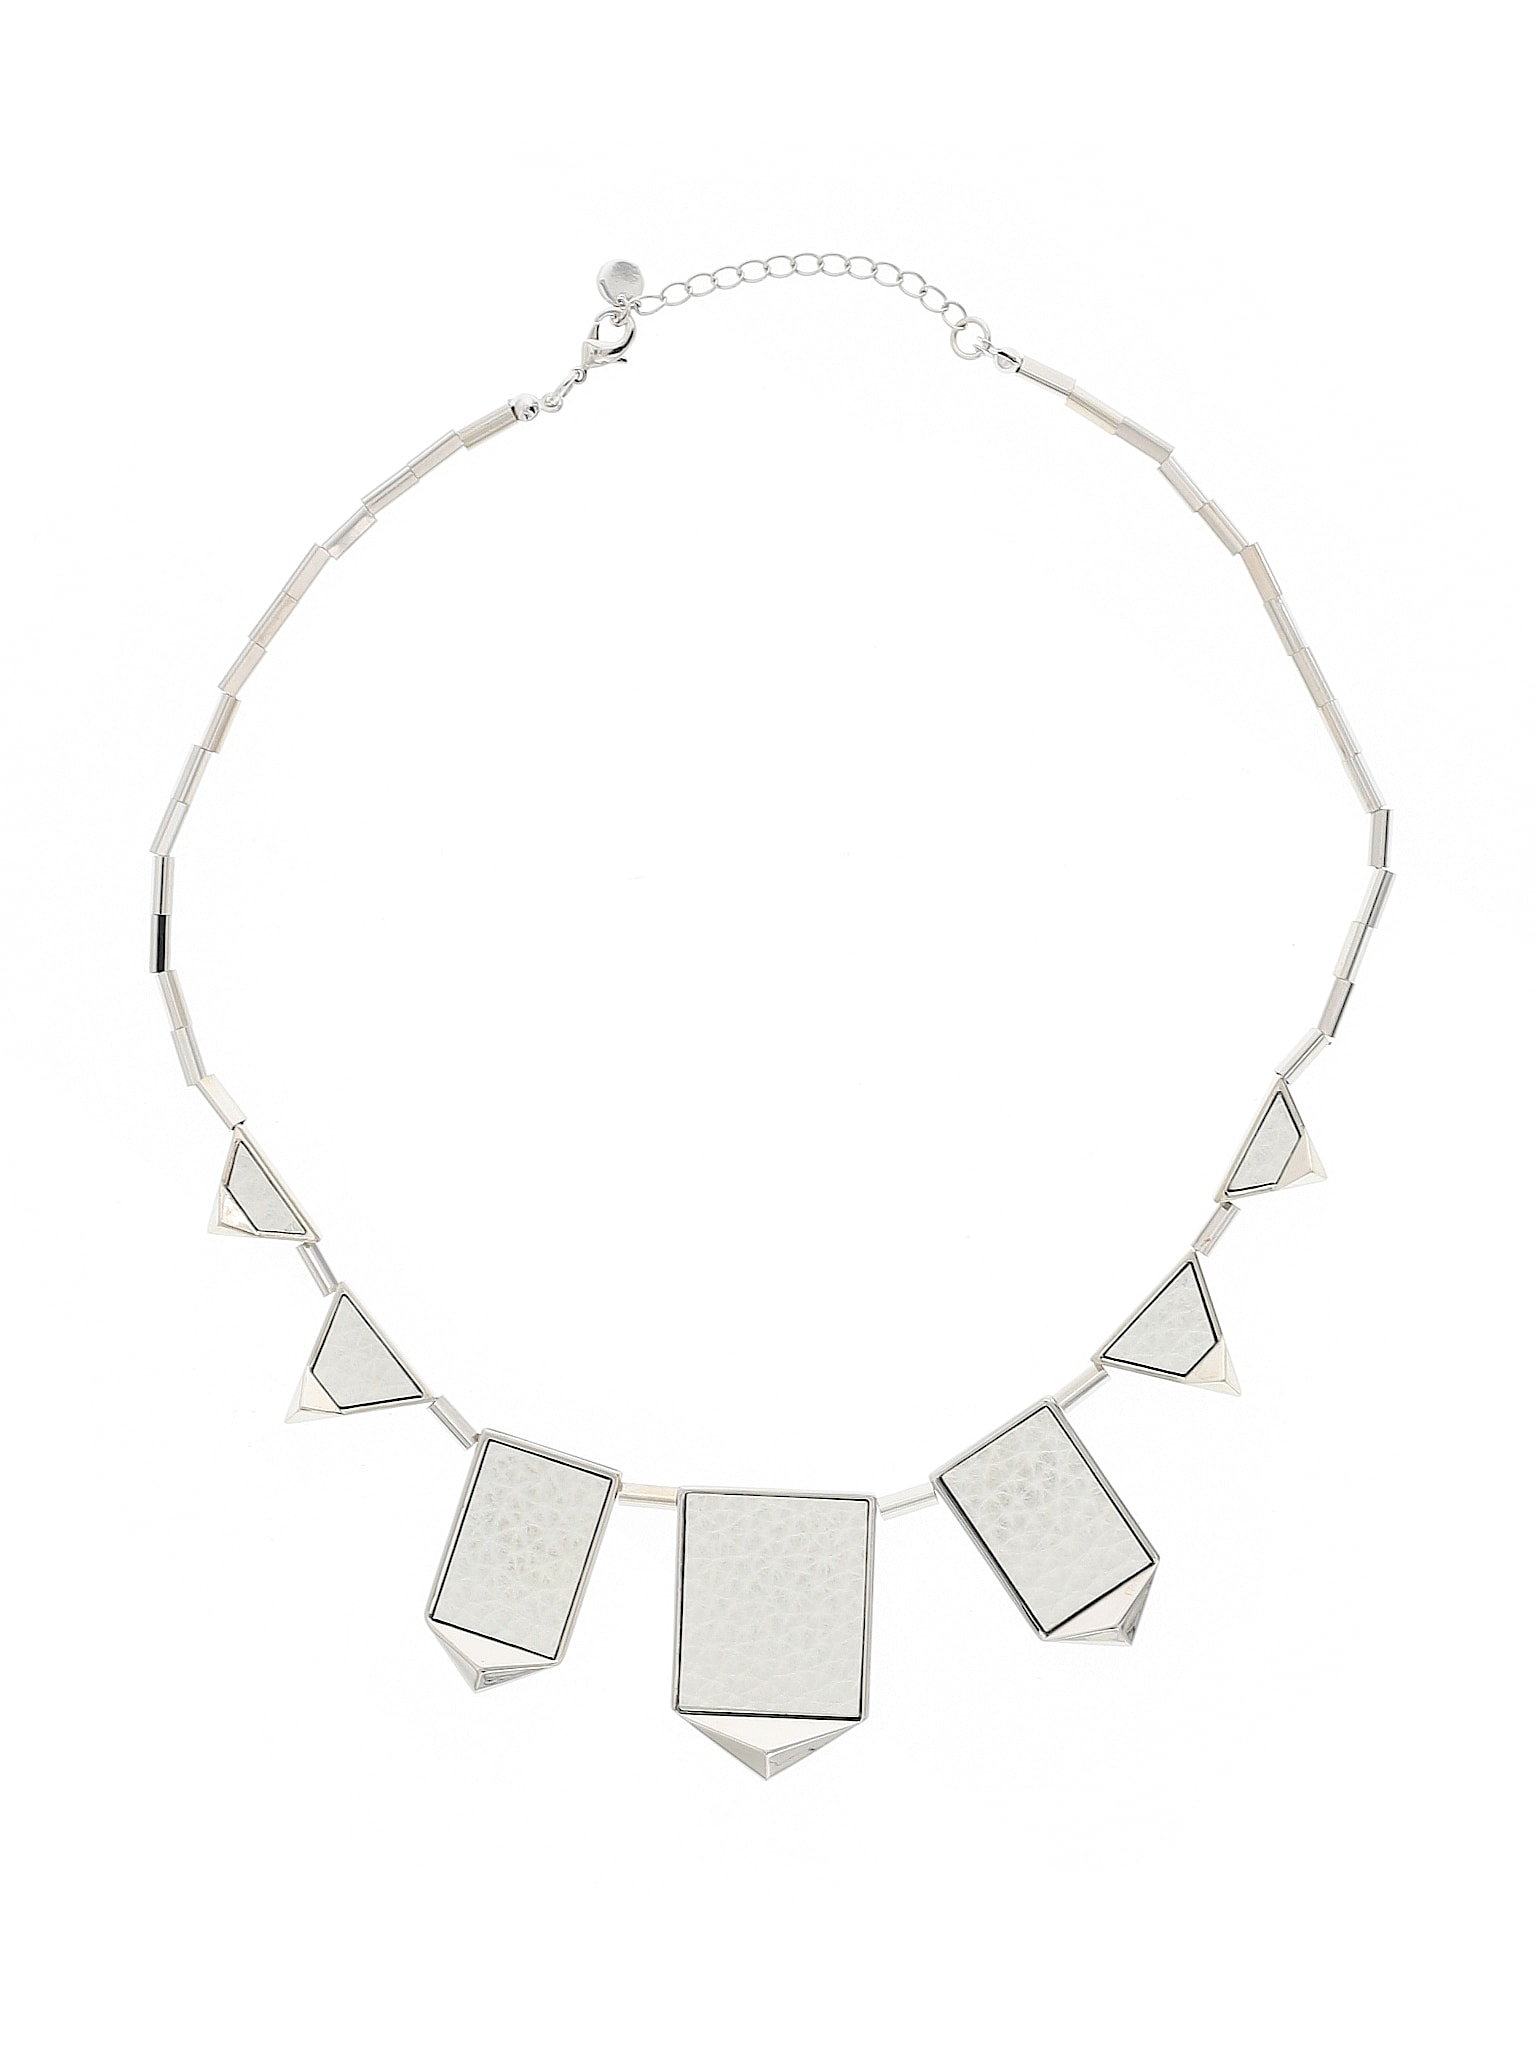 House of Harlow 1960 X Revolve Necklace -